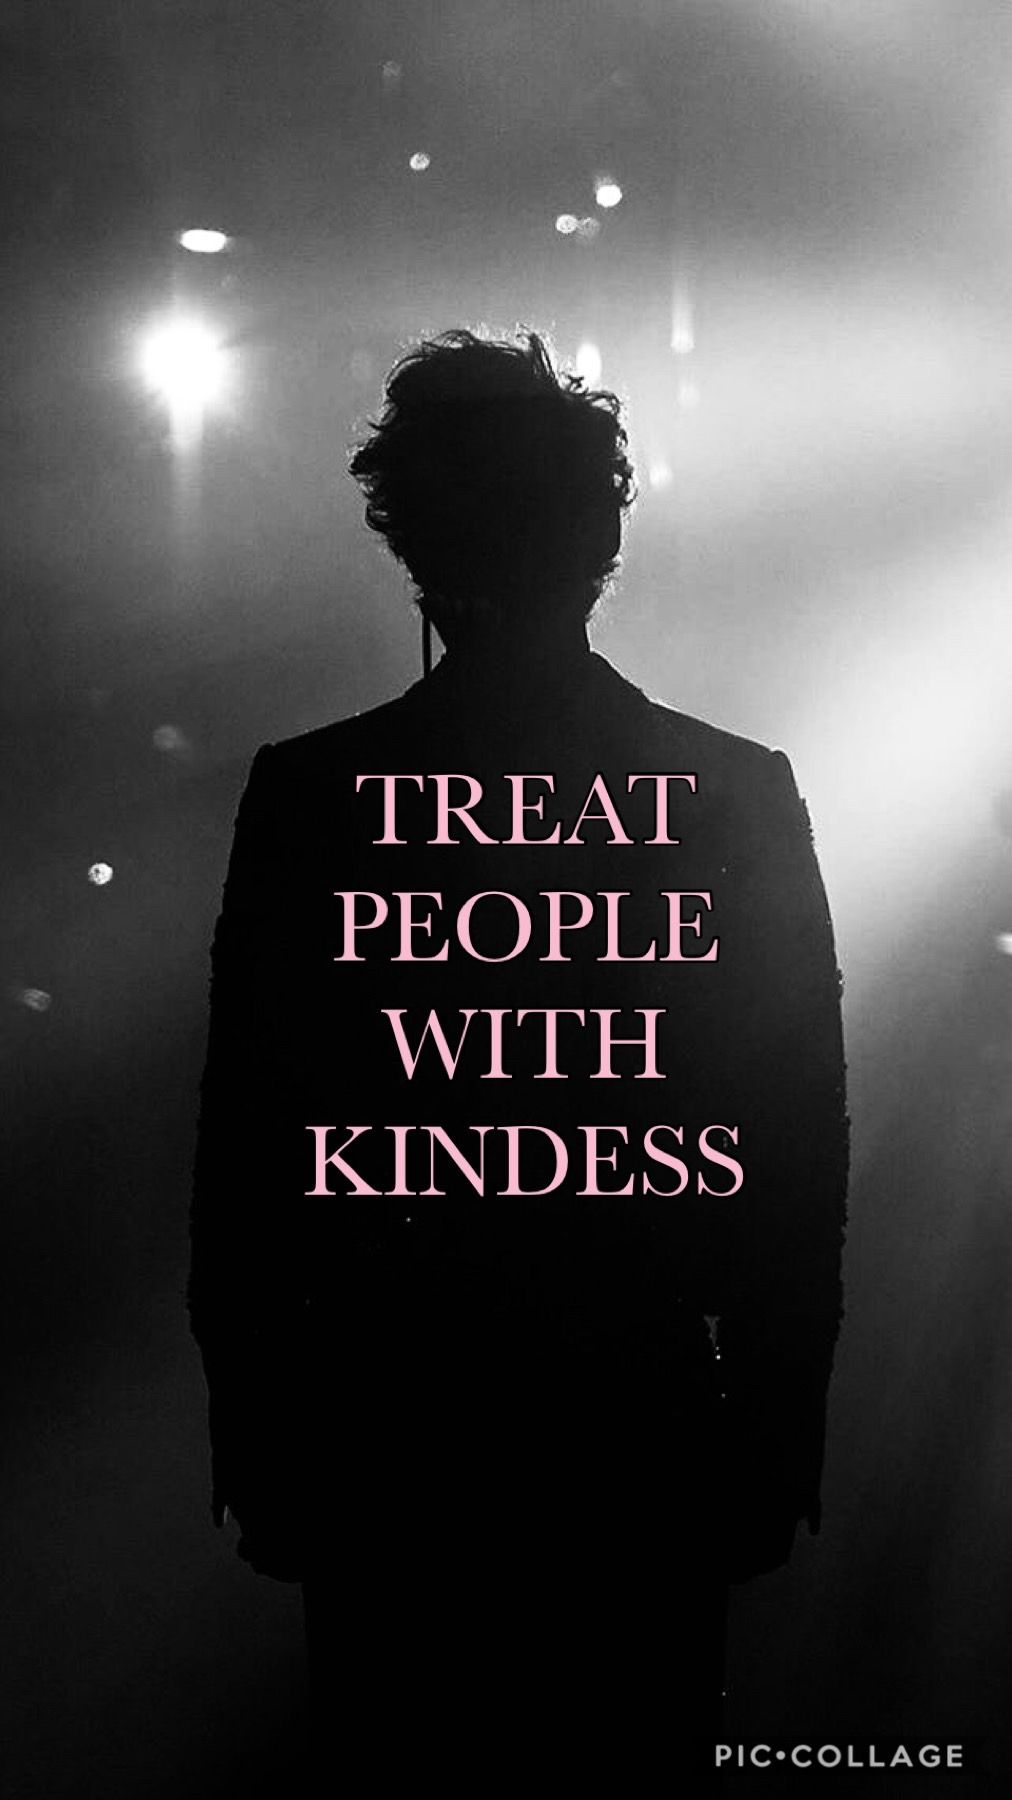 Harry Styles Lockscreen, Harry Styles Wallpaper Iphone, One Direction Harry Styles, One Direction